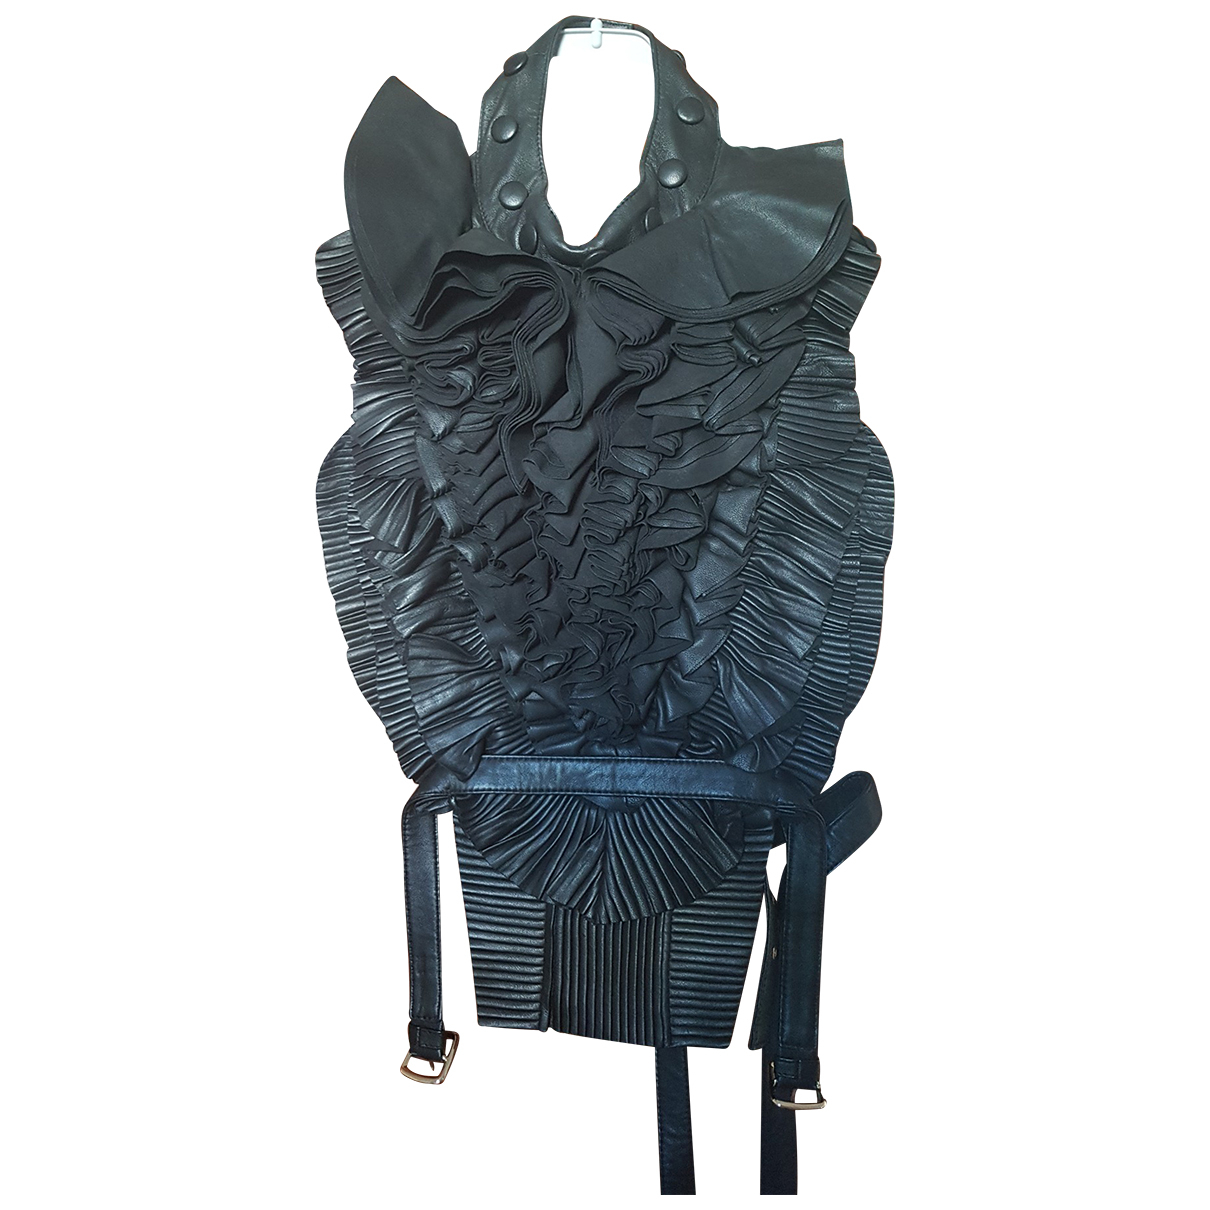 Givenchy \N Black Leather  top for Women One Size FR